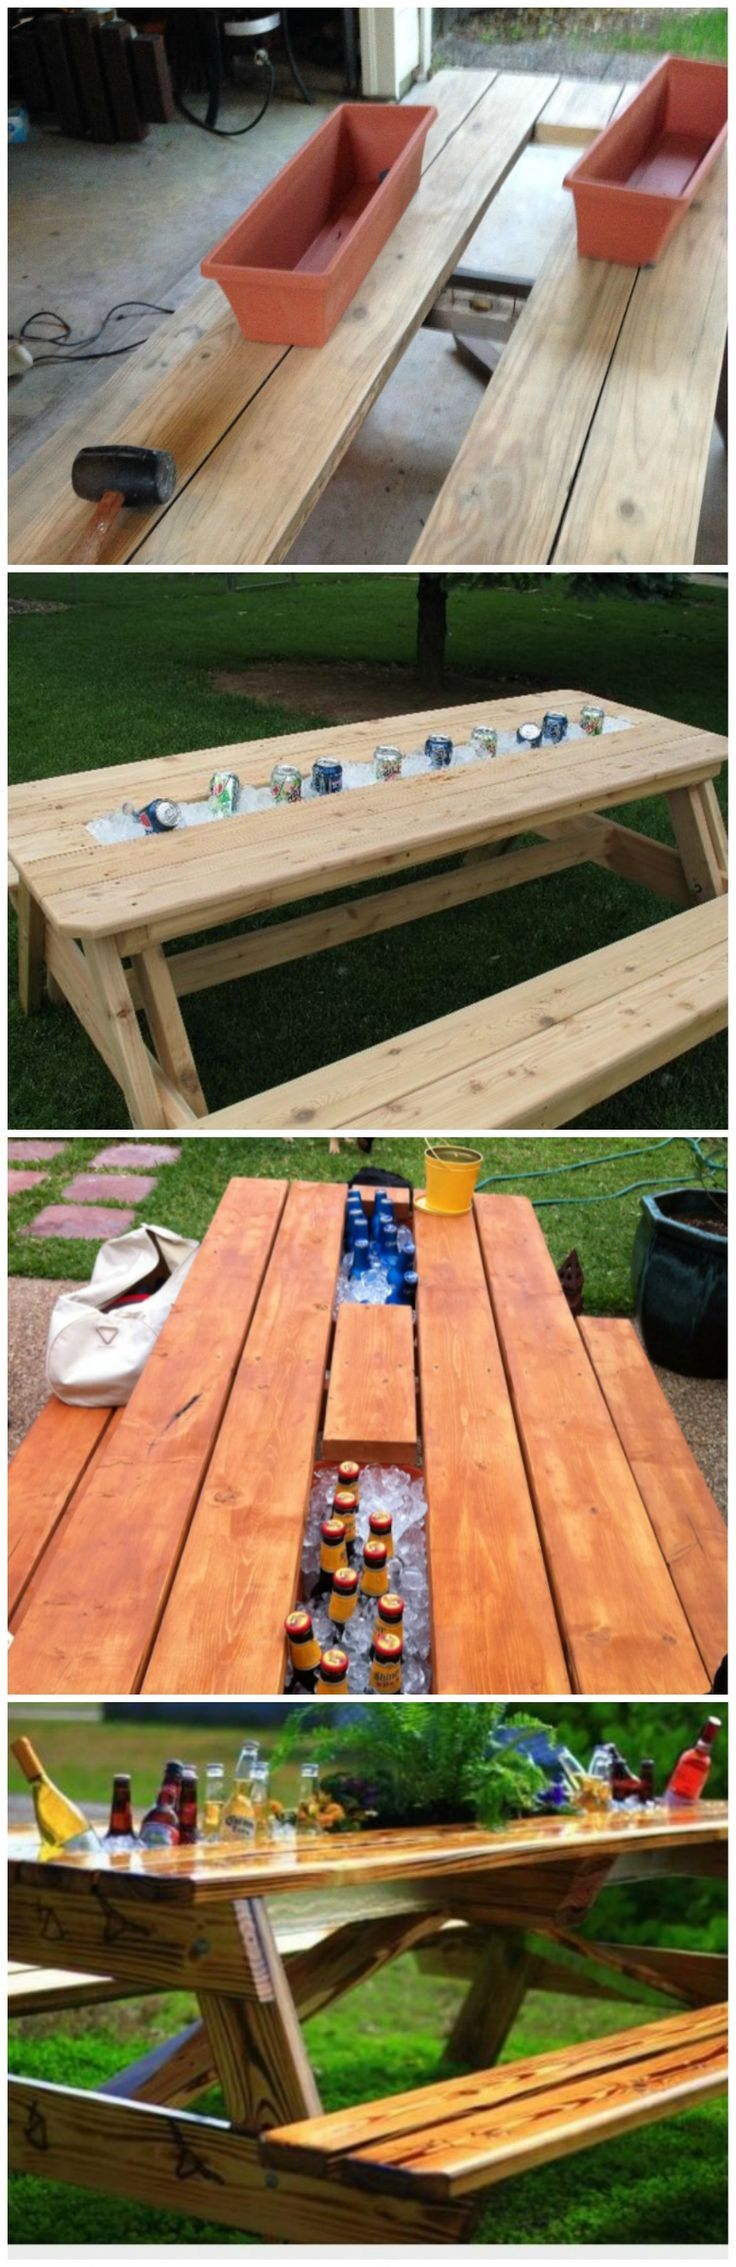 Replace board of picnic table with rain gutter. Fill with ice and enjoy! ... How does it look ? ♠ re-pinned by http://www.waterfront-properties.com/